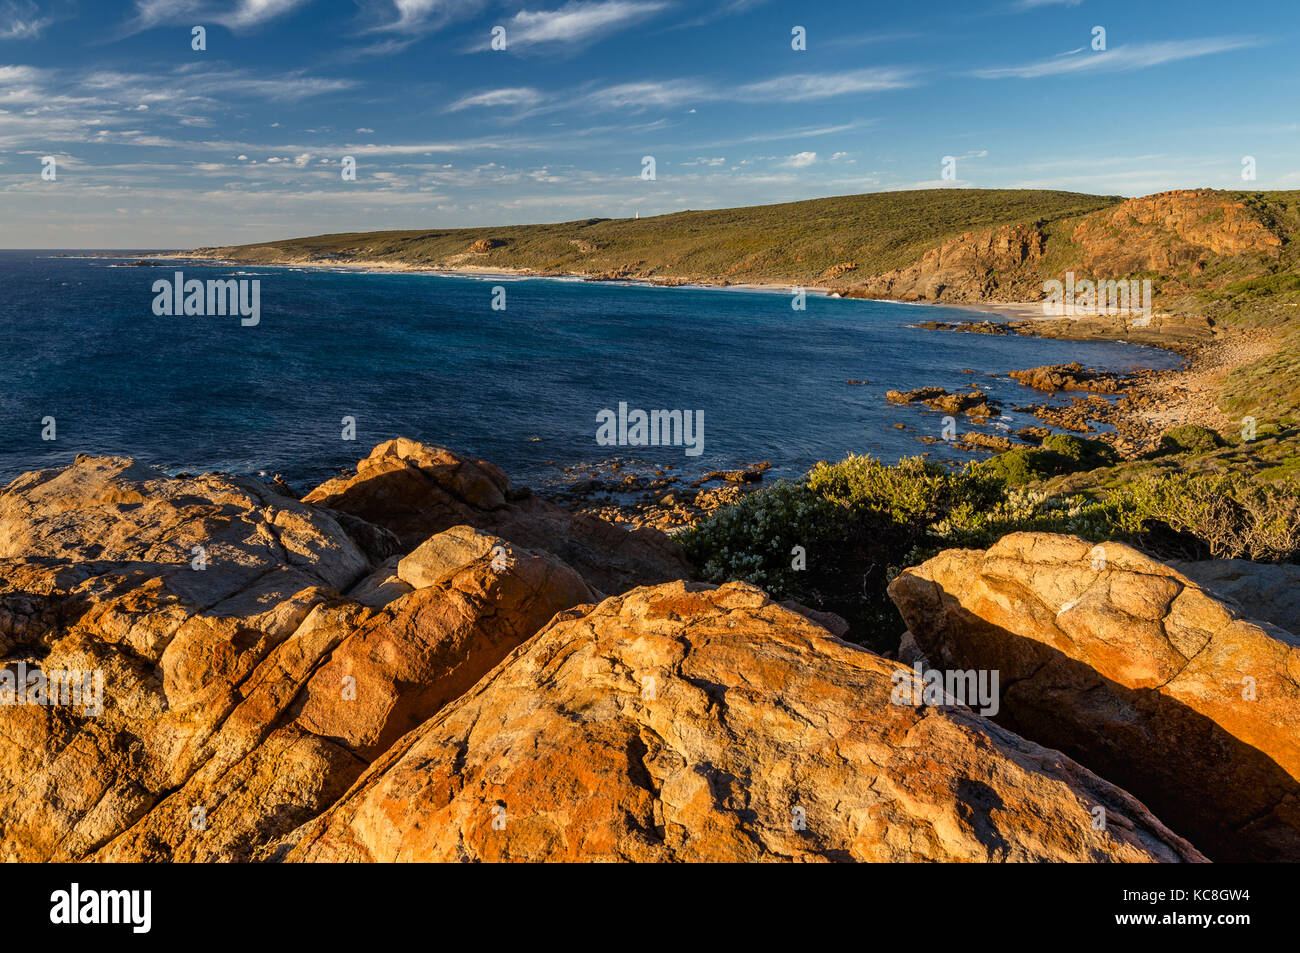 Evening light on Cape Naturaliste in South West Australia. - Stock Image